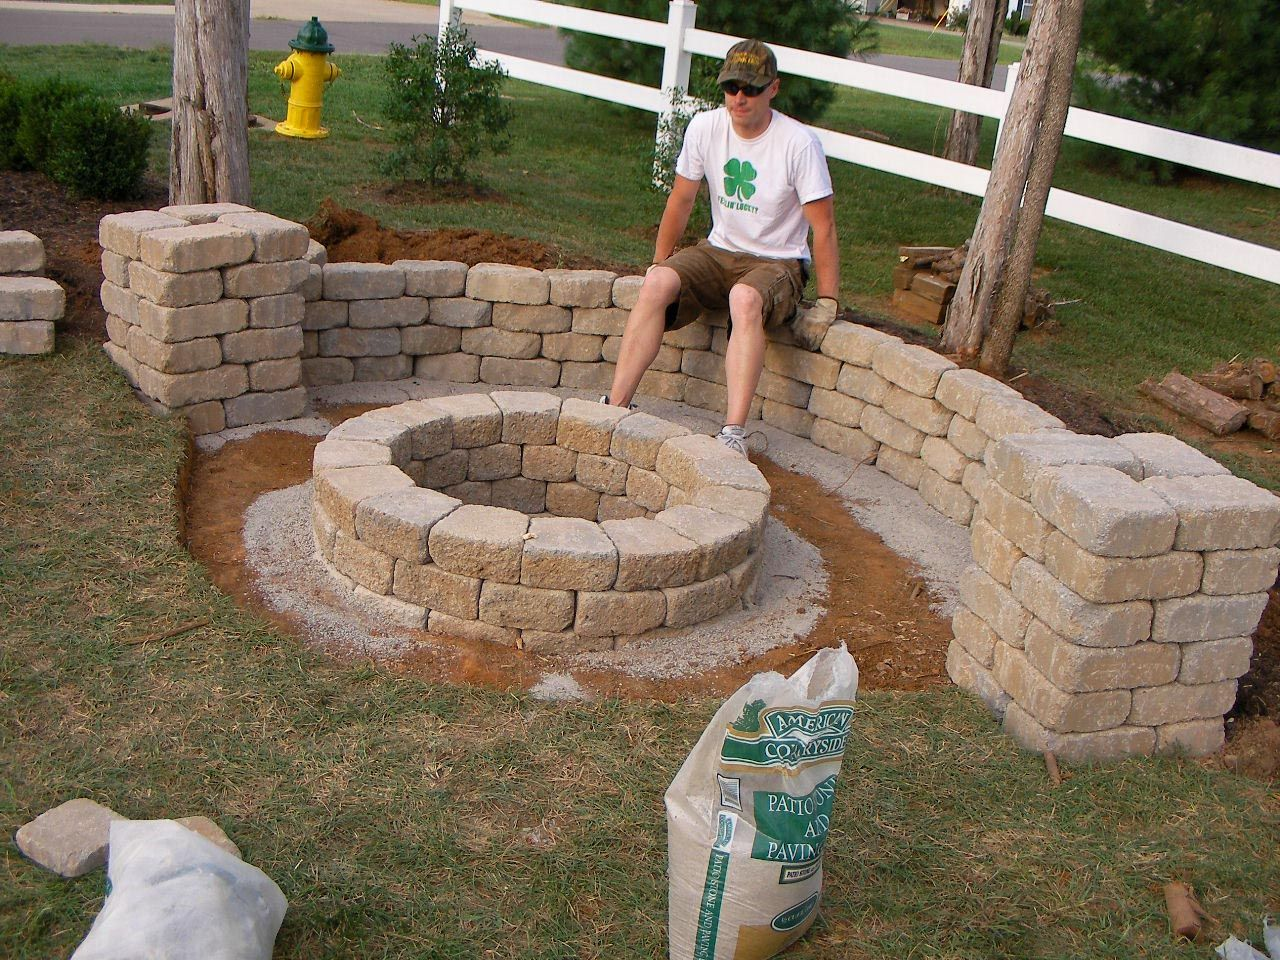 Easy Backyard Fire Pit Designs More - Easy Backyard Fire Pit Designs … Firepits…